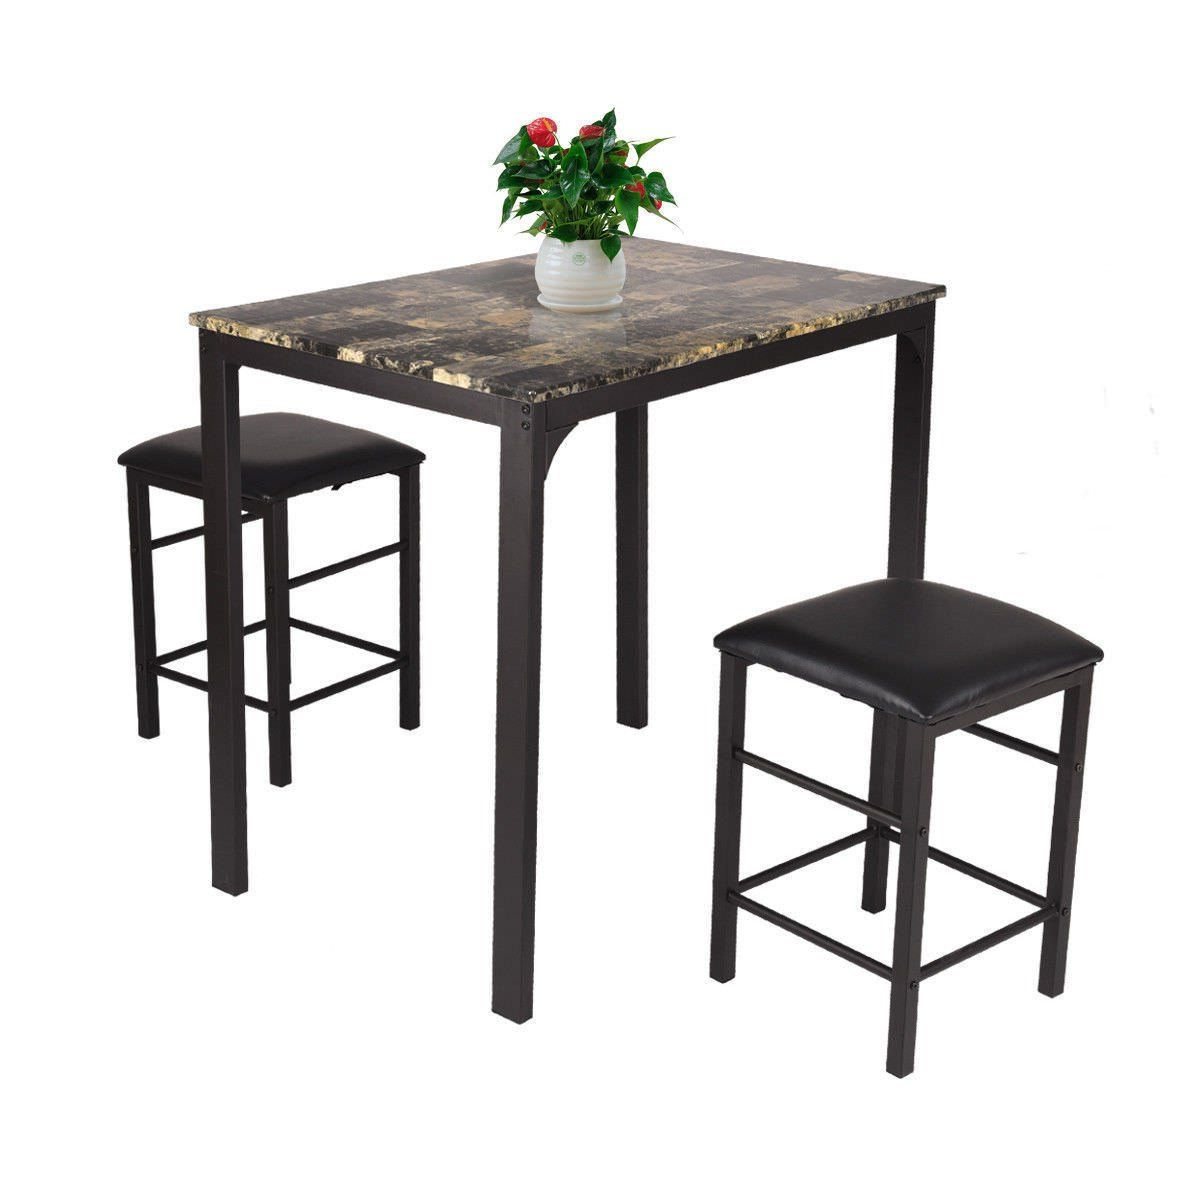 Well Liked 5 Piece Percie Industrial Counter Height Dining Set Oak/black Intended For Kerley 4 Piece Dining Sets (View 17 of 25)